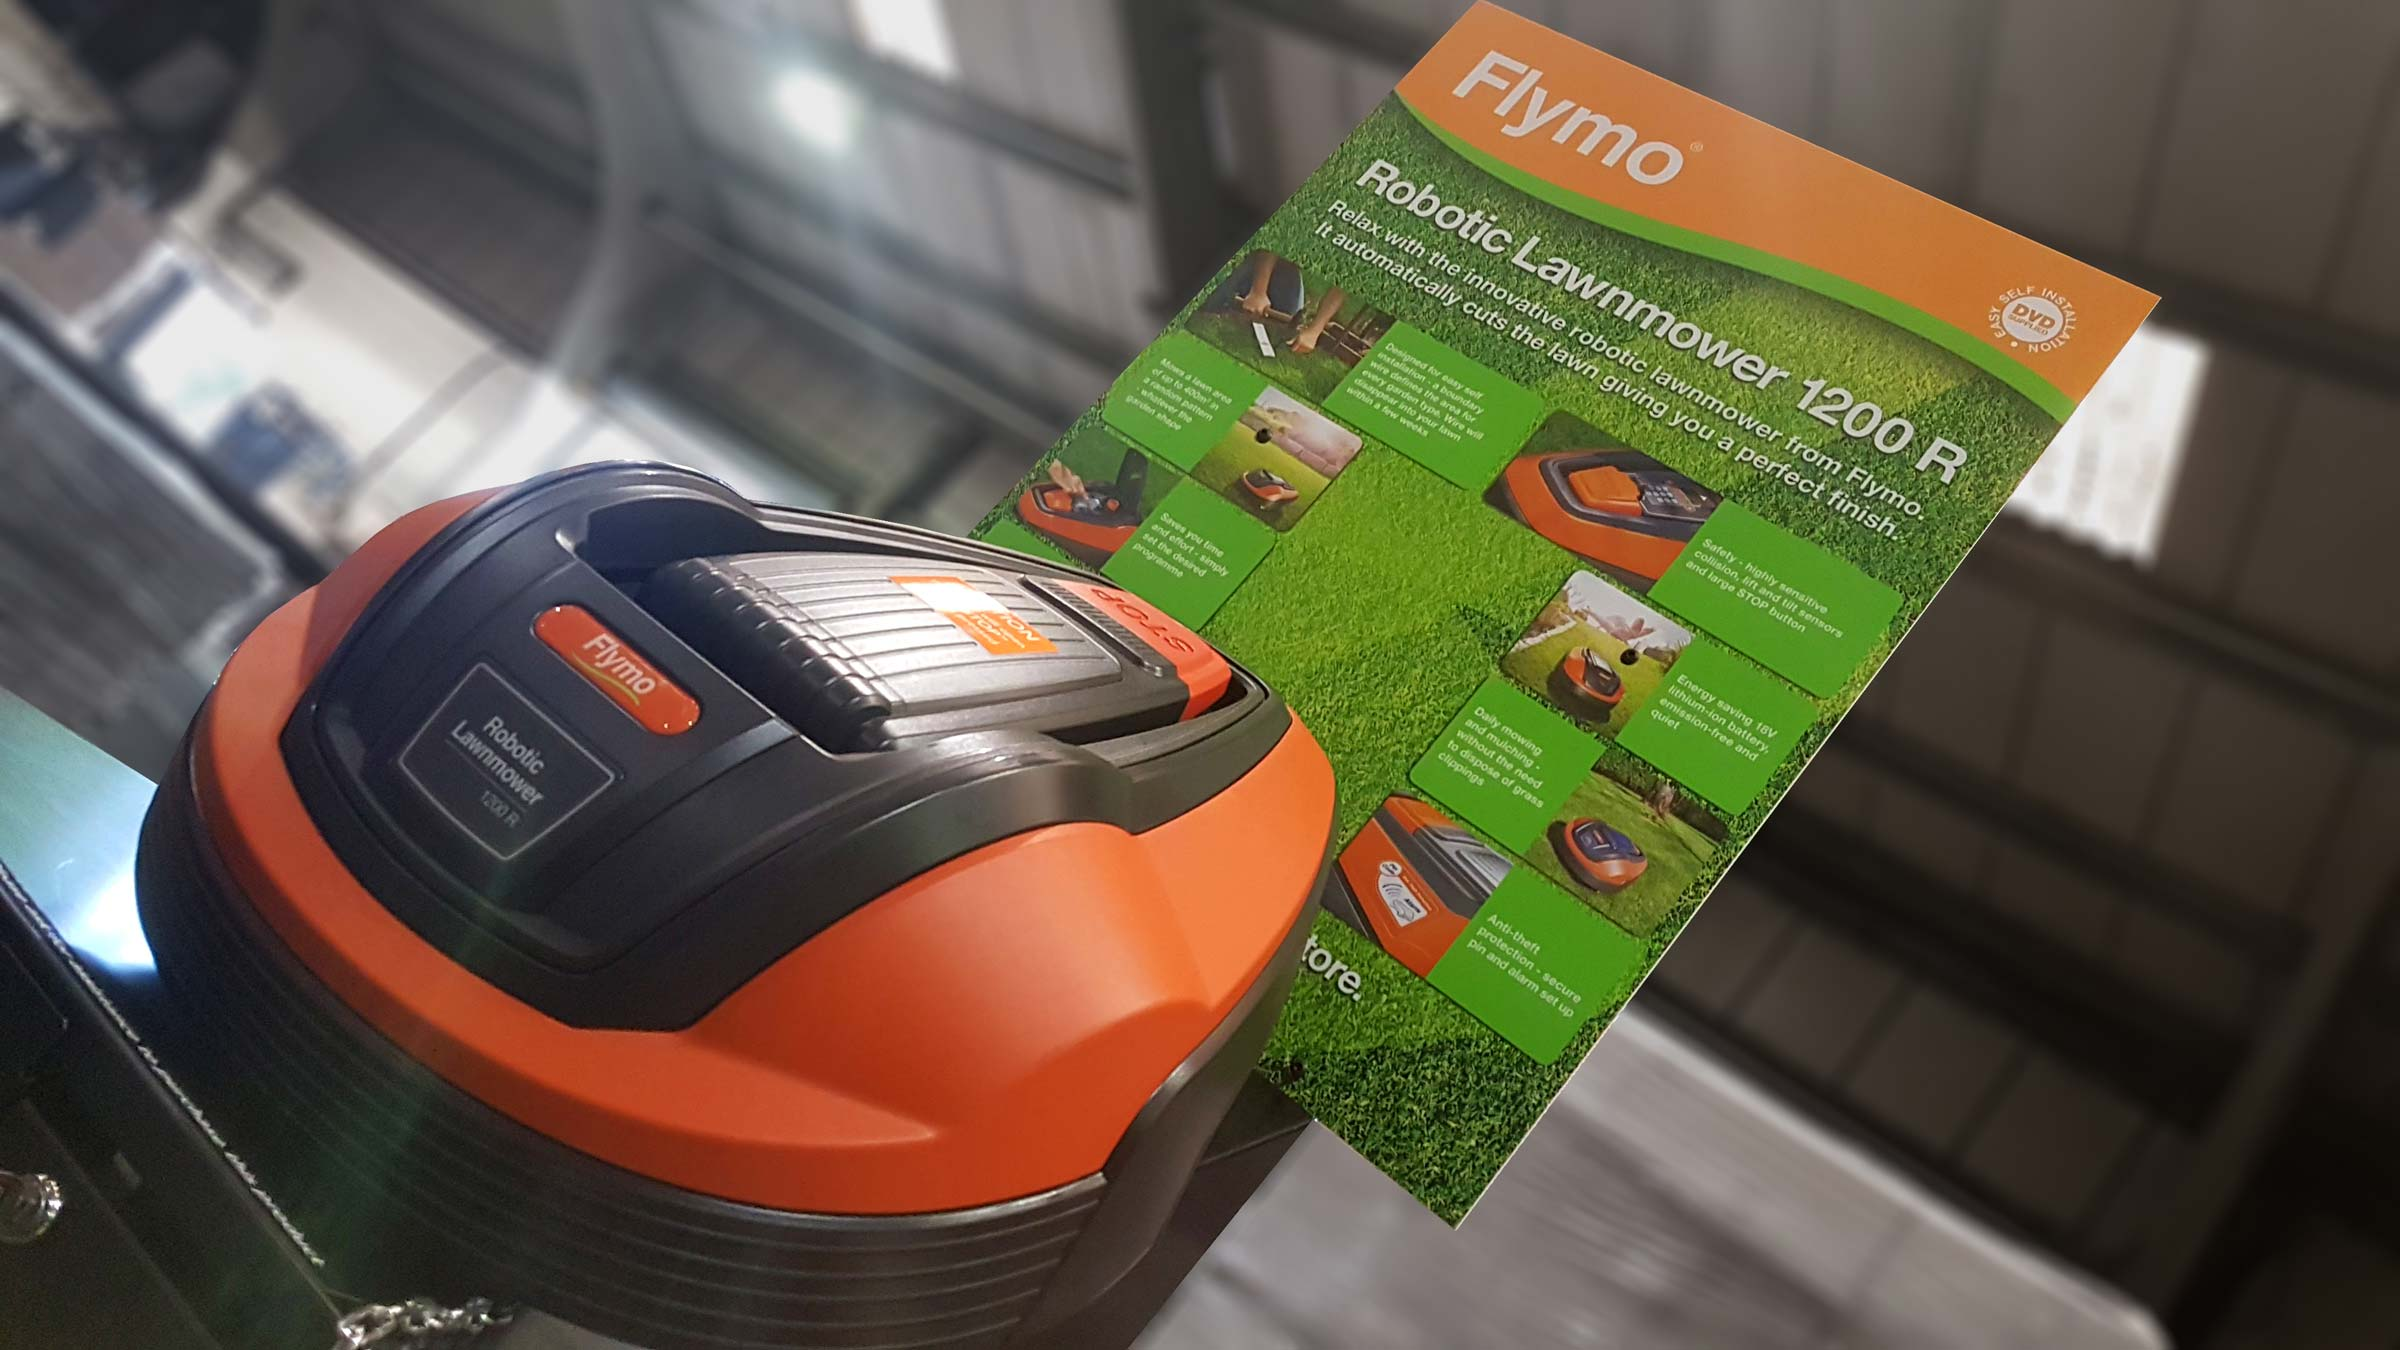 Flymo robotic lawnmower displays set for B&Q